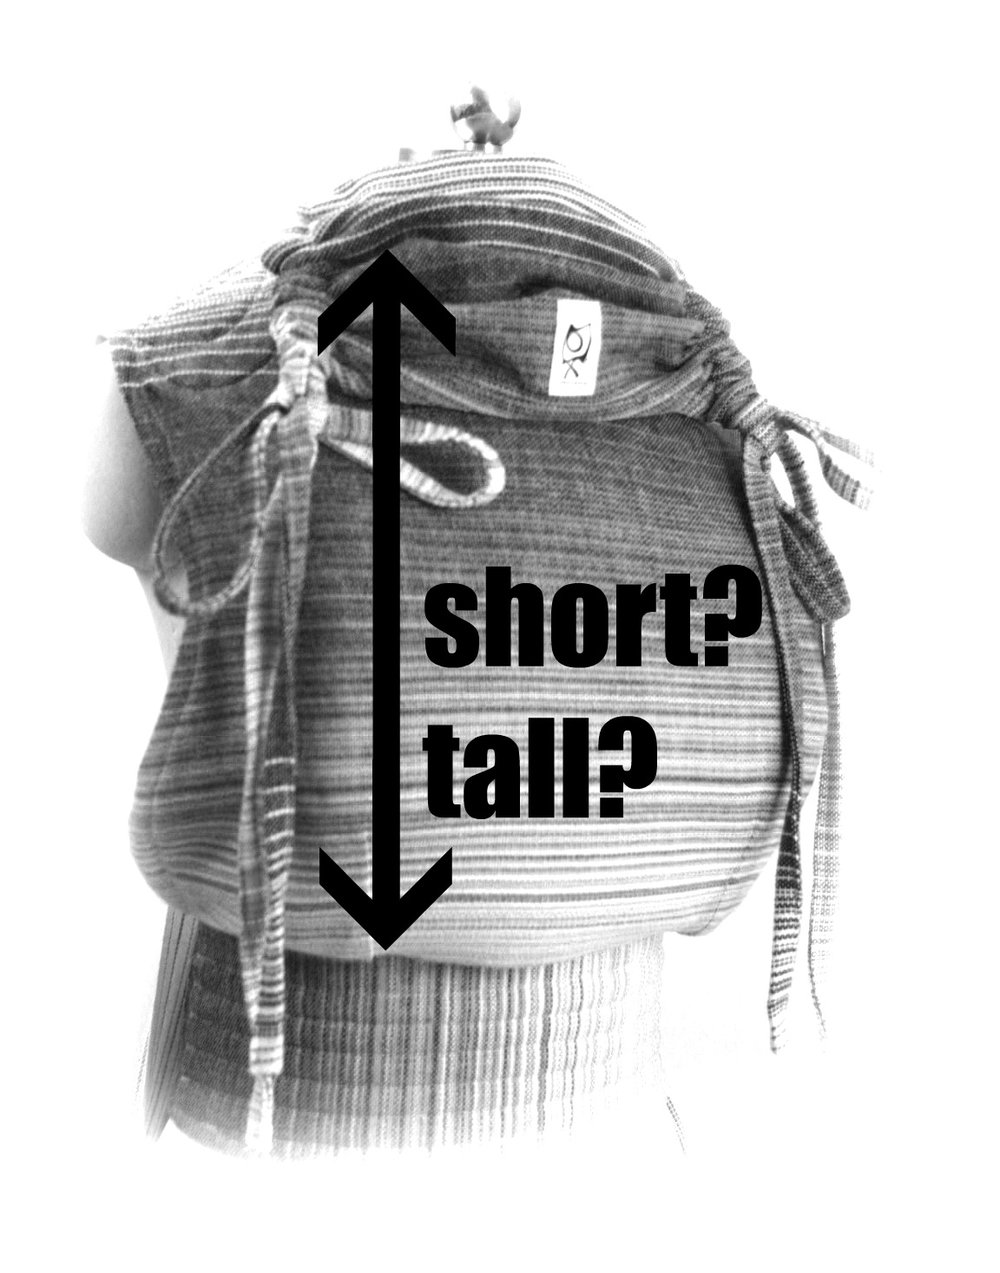 tall or short.jpg